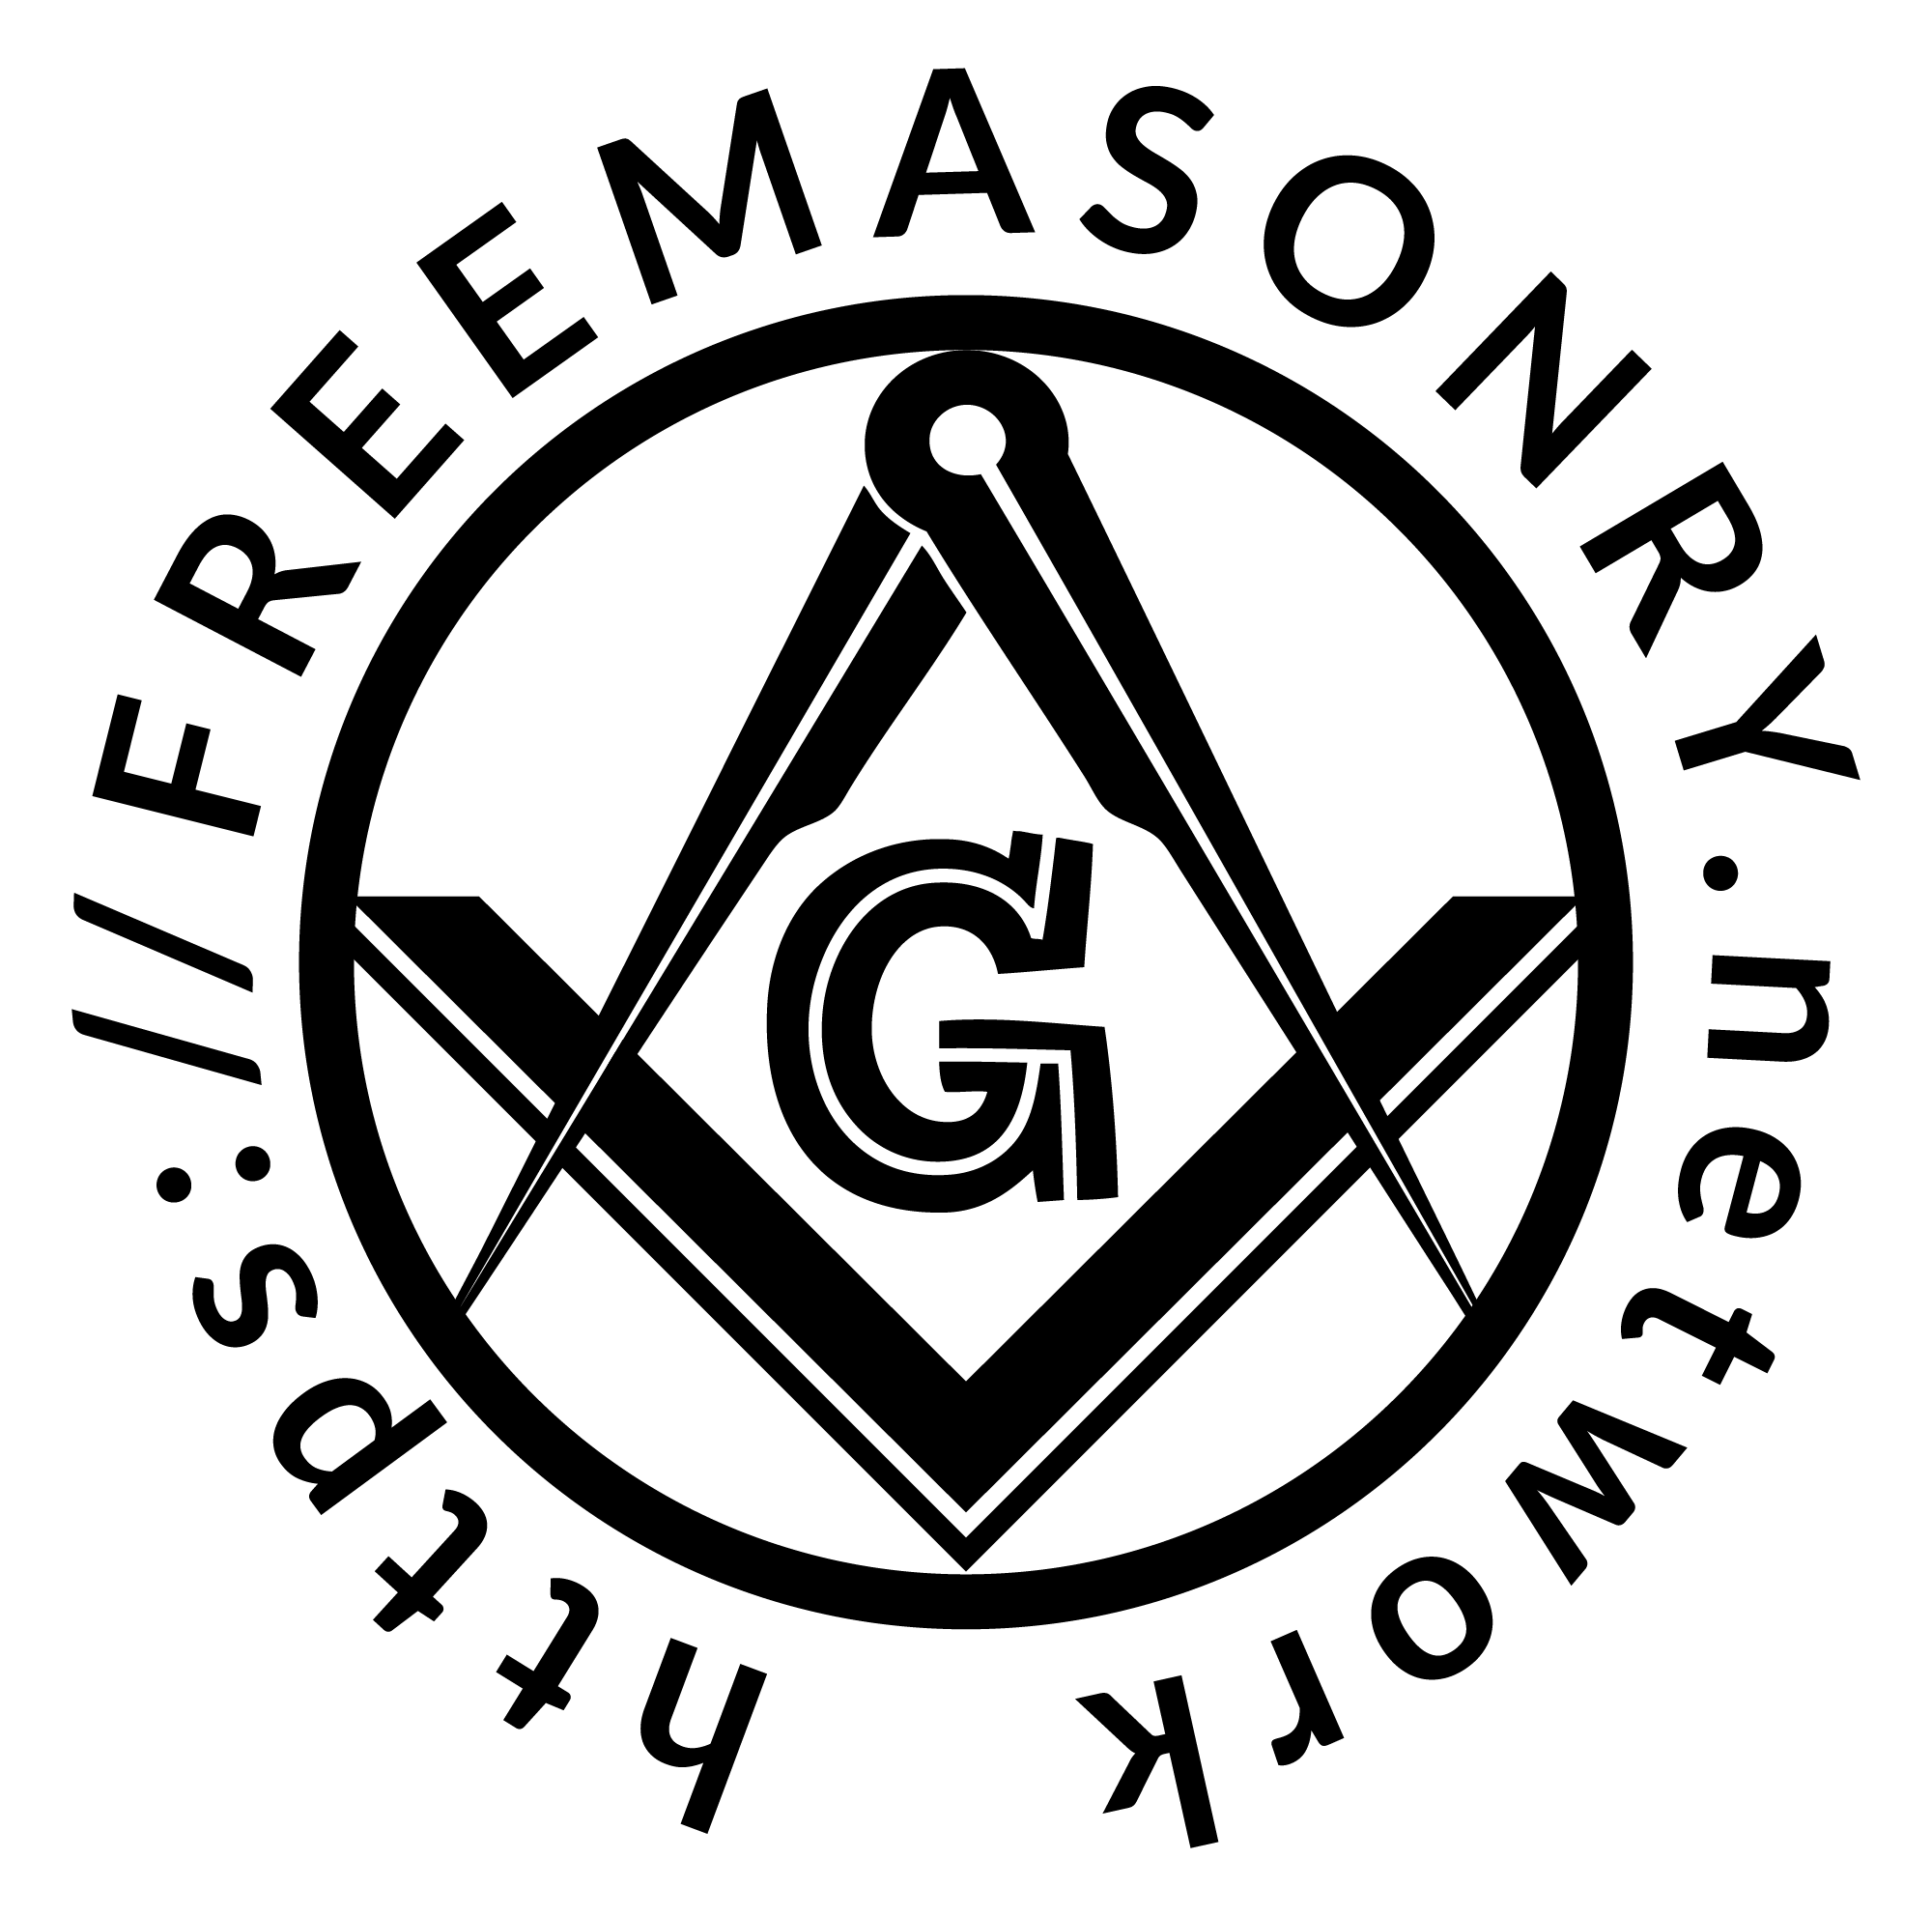 Masonic Buildings Gallery